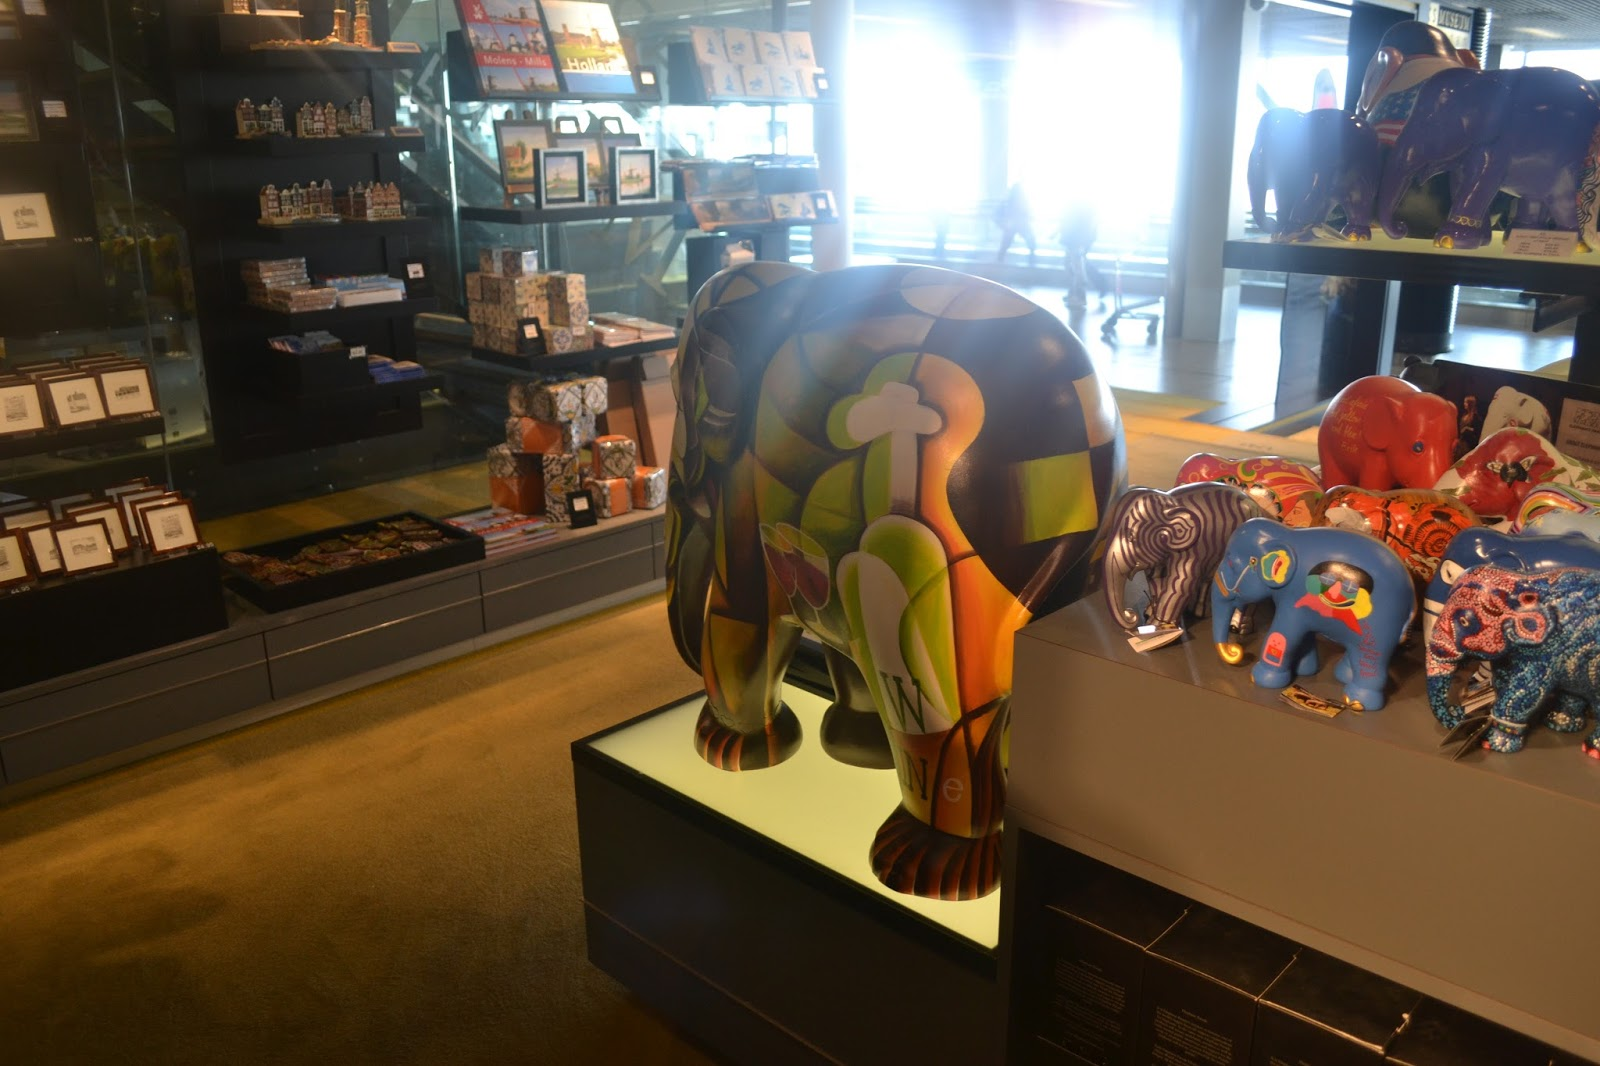 Wooden elephants at Amsterdam Schipol Airport